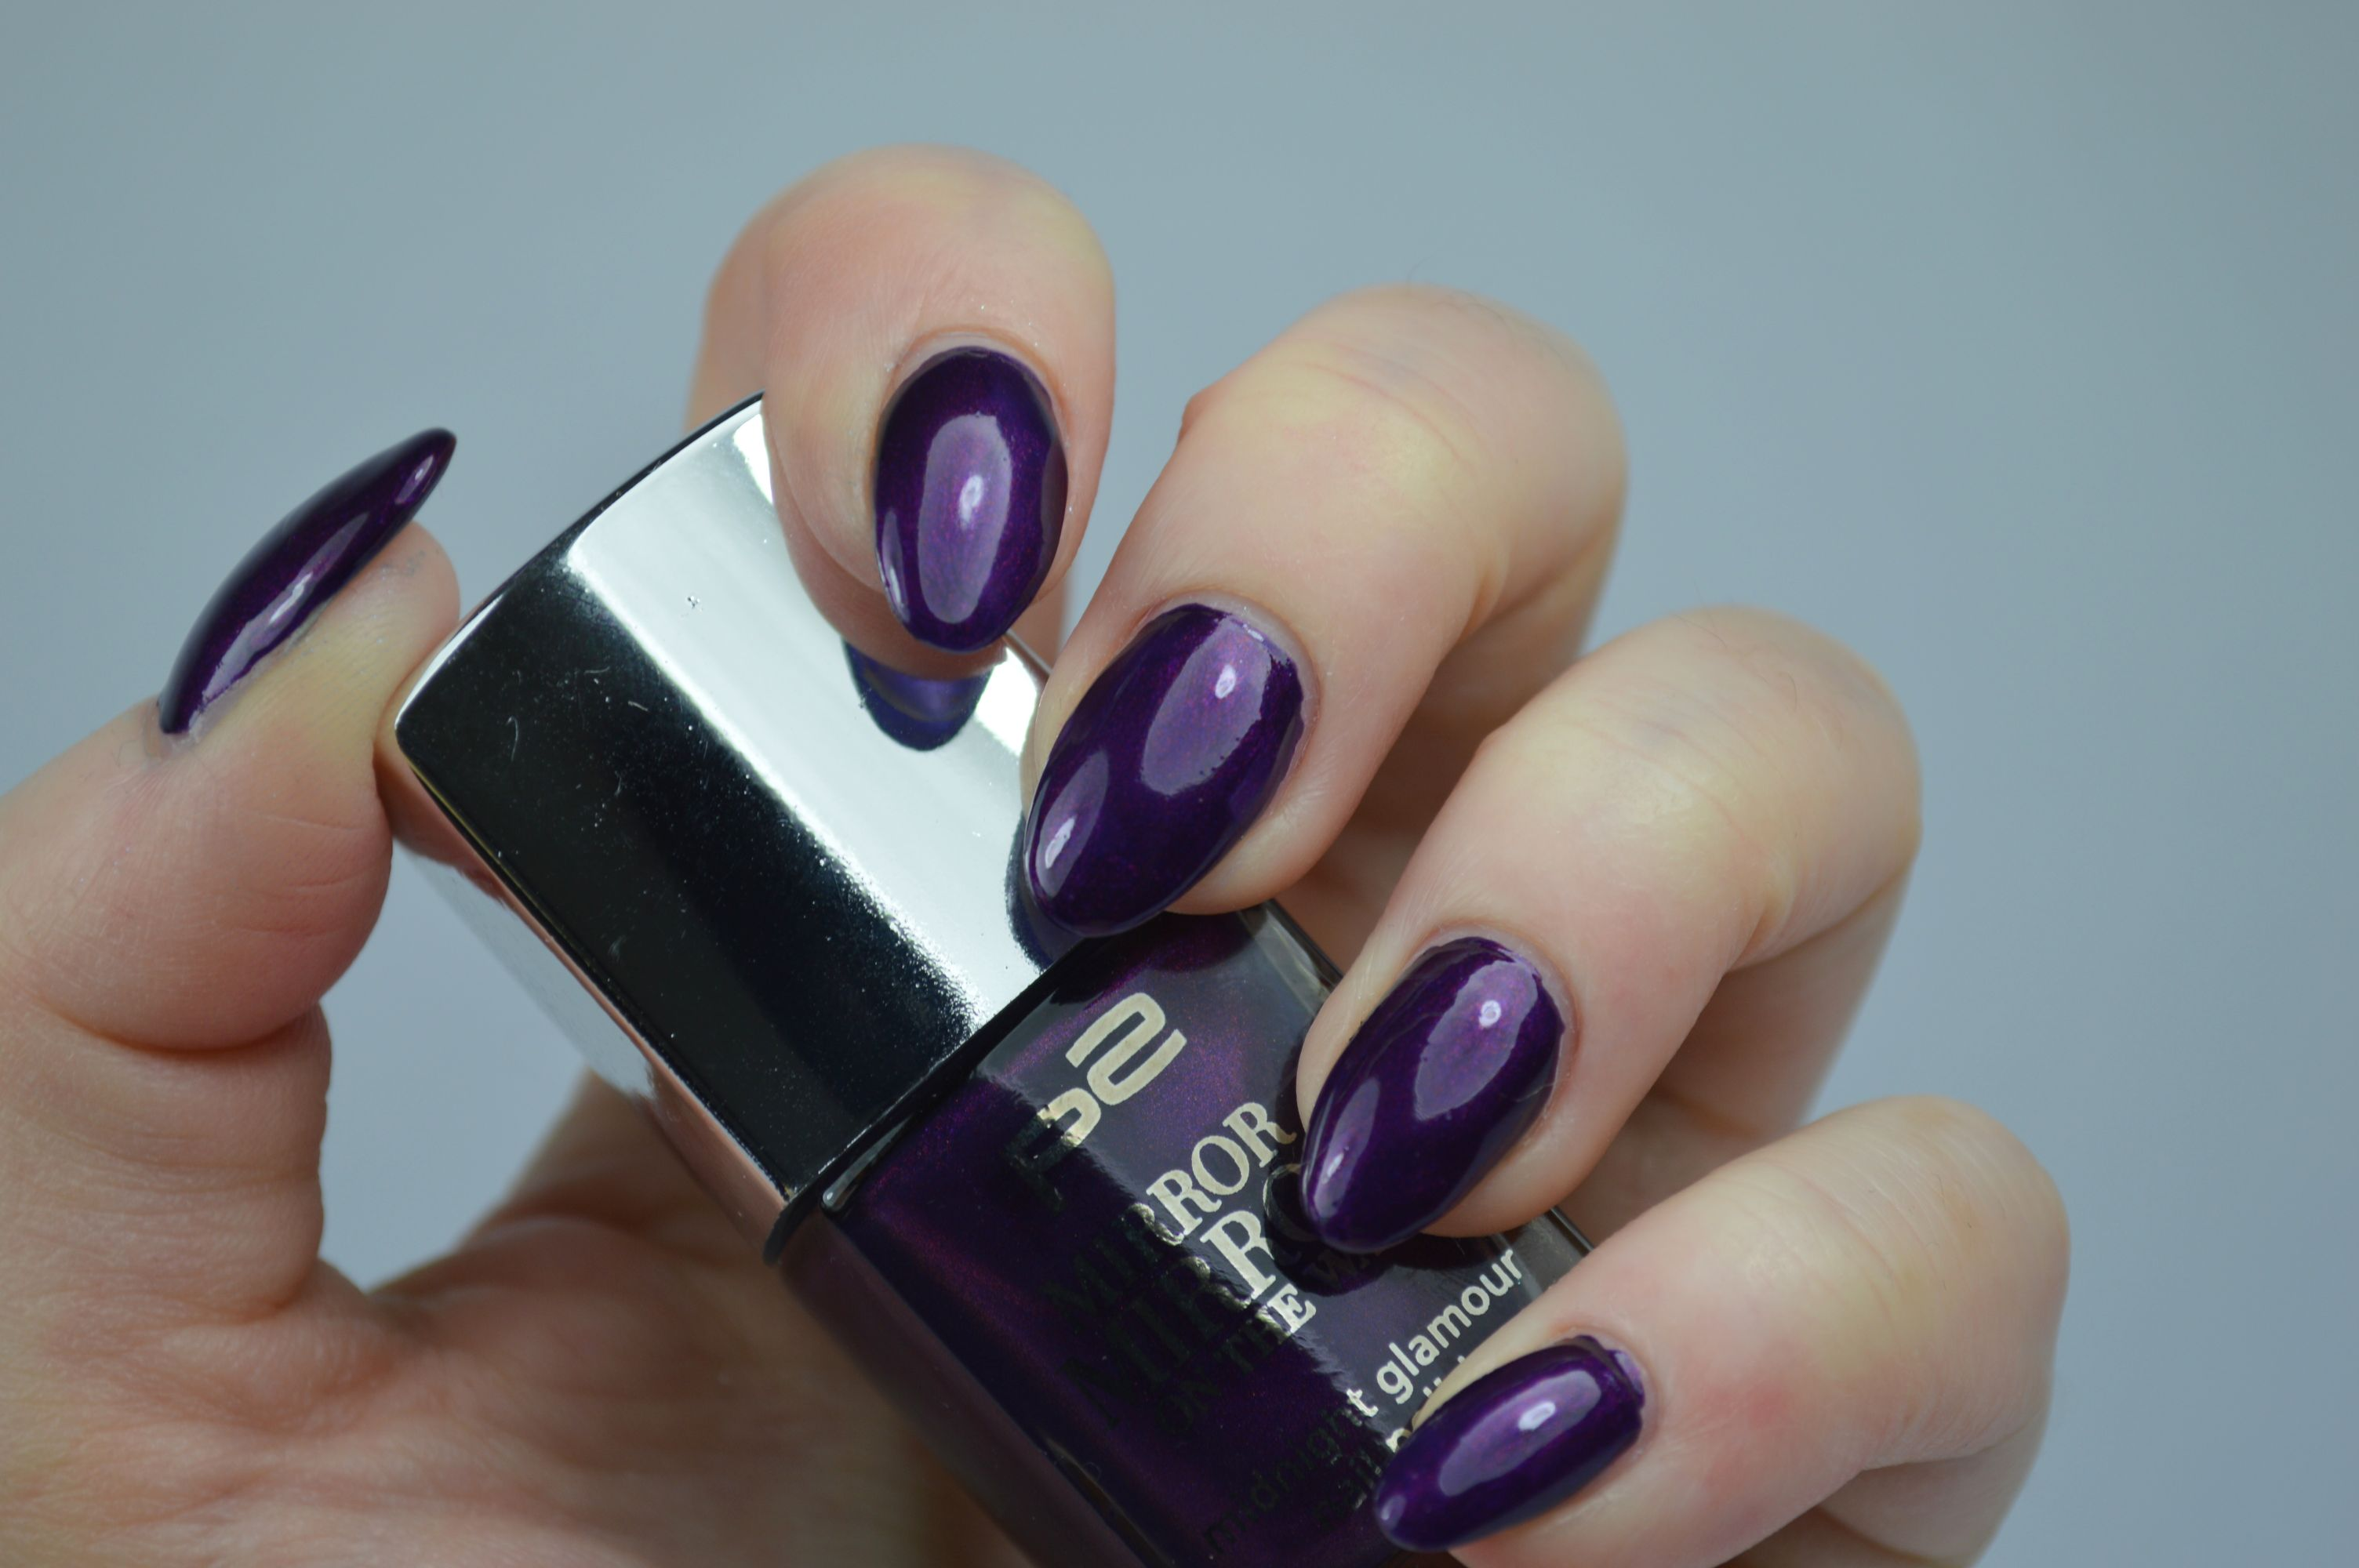 P2 Sensual Purple Swatches